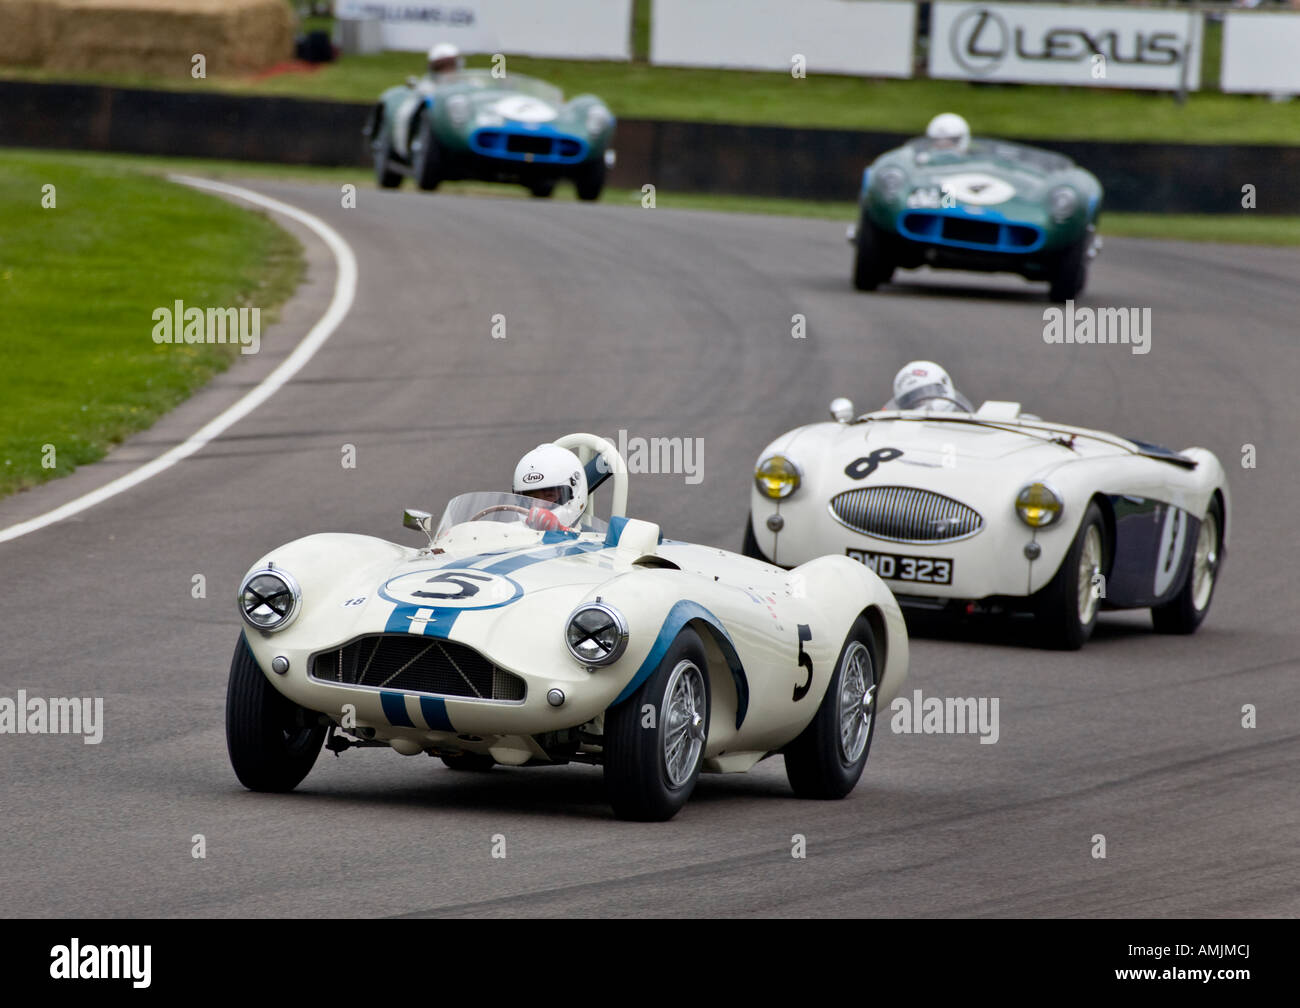 1955 Aston Martin DB3S driven by Uri Muller leads the Austin-Healey 100S of Stuart Graham through Madgwick at Goodwood Revival. Stock Photo